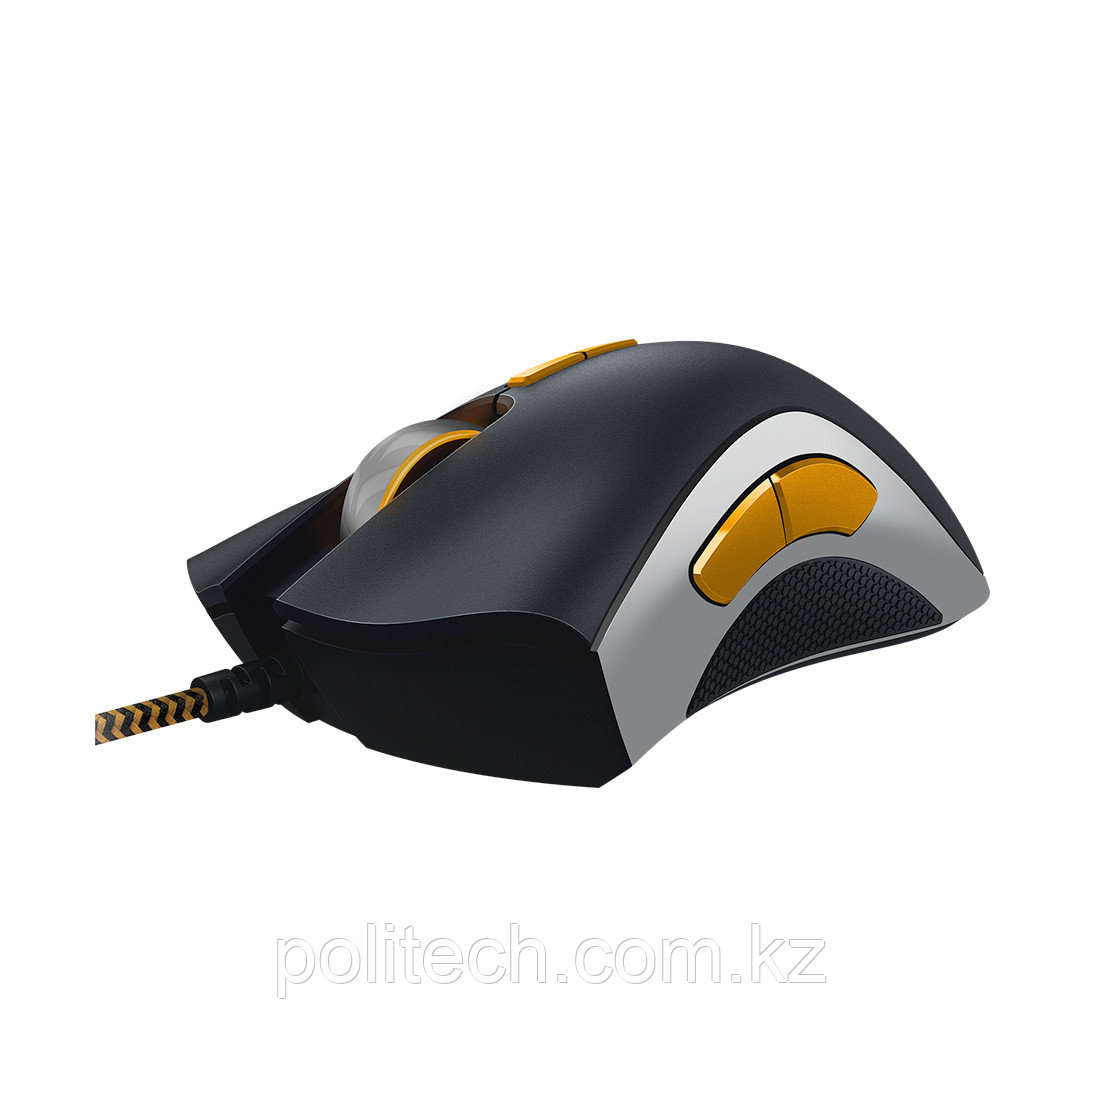 Компьютерная мышь Razer DeathAdder Elite Overwatch